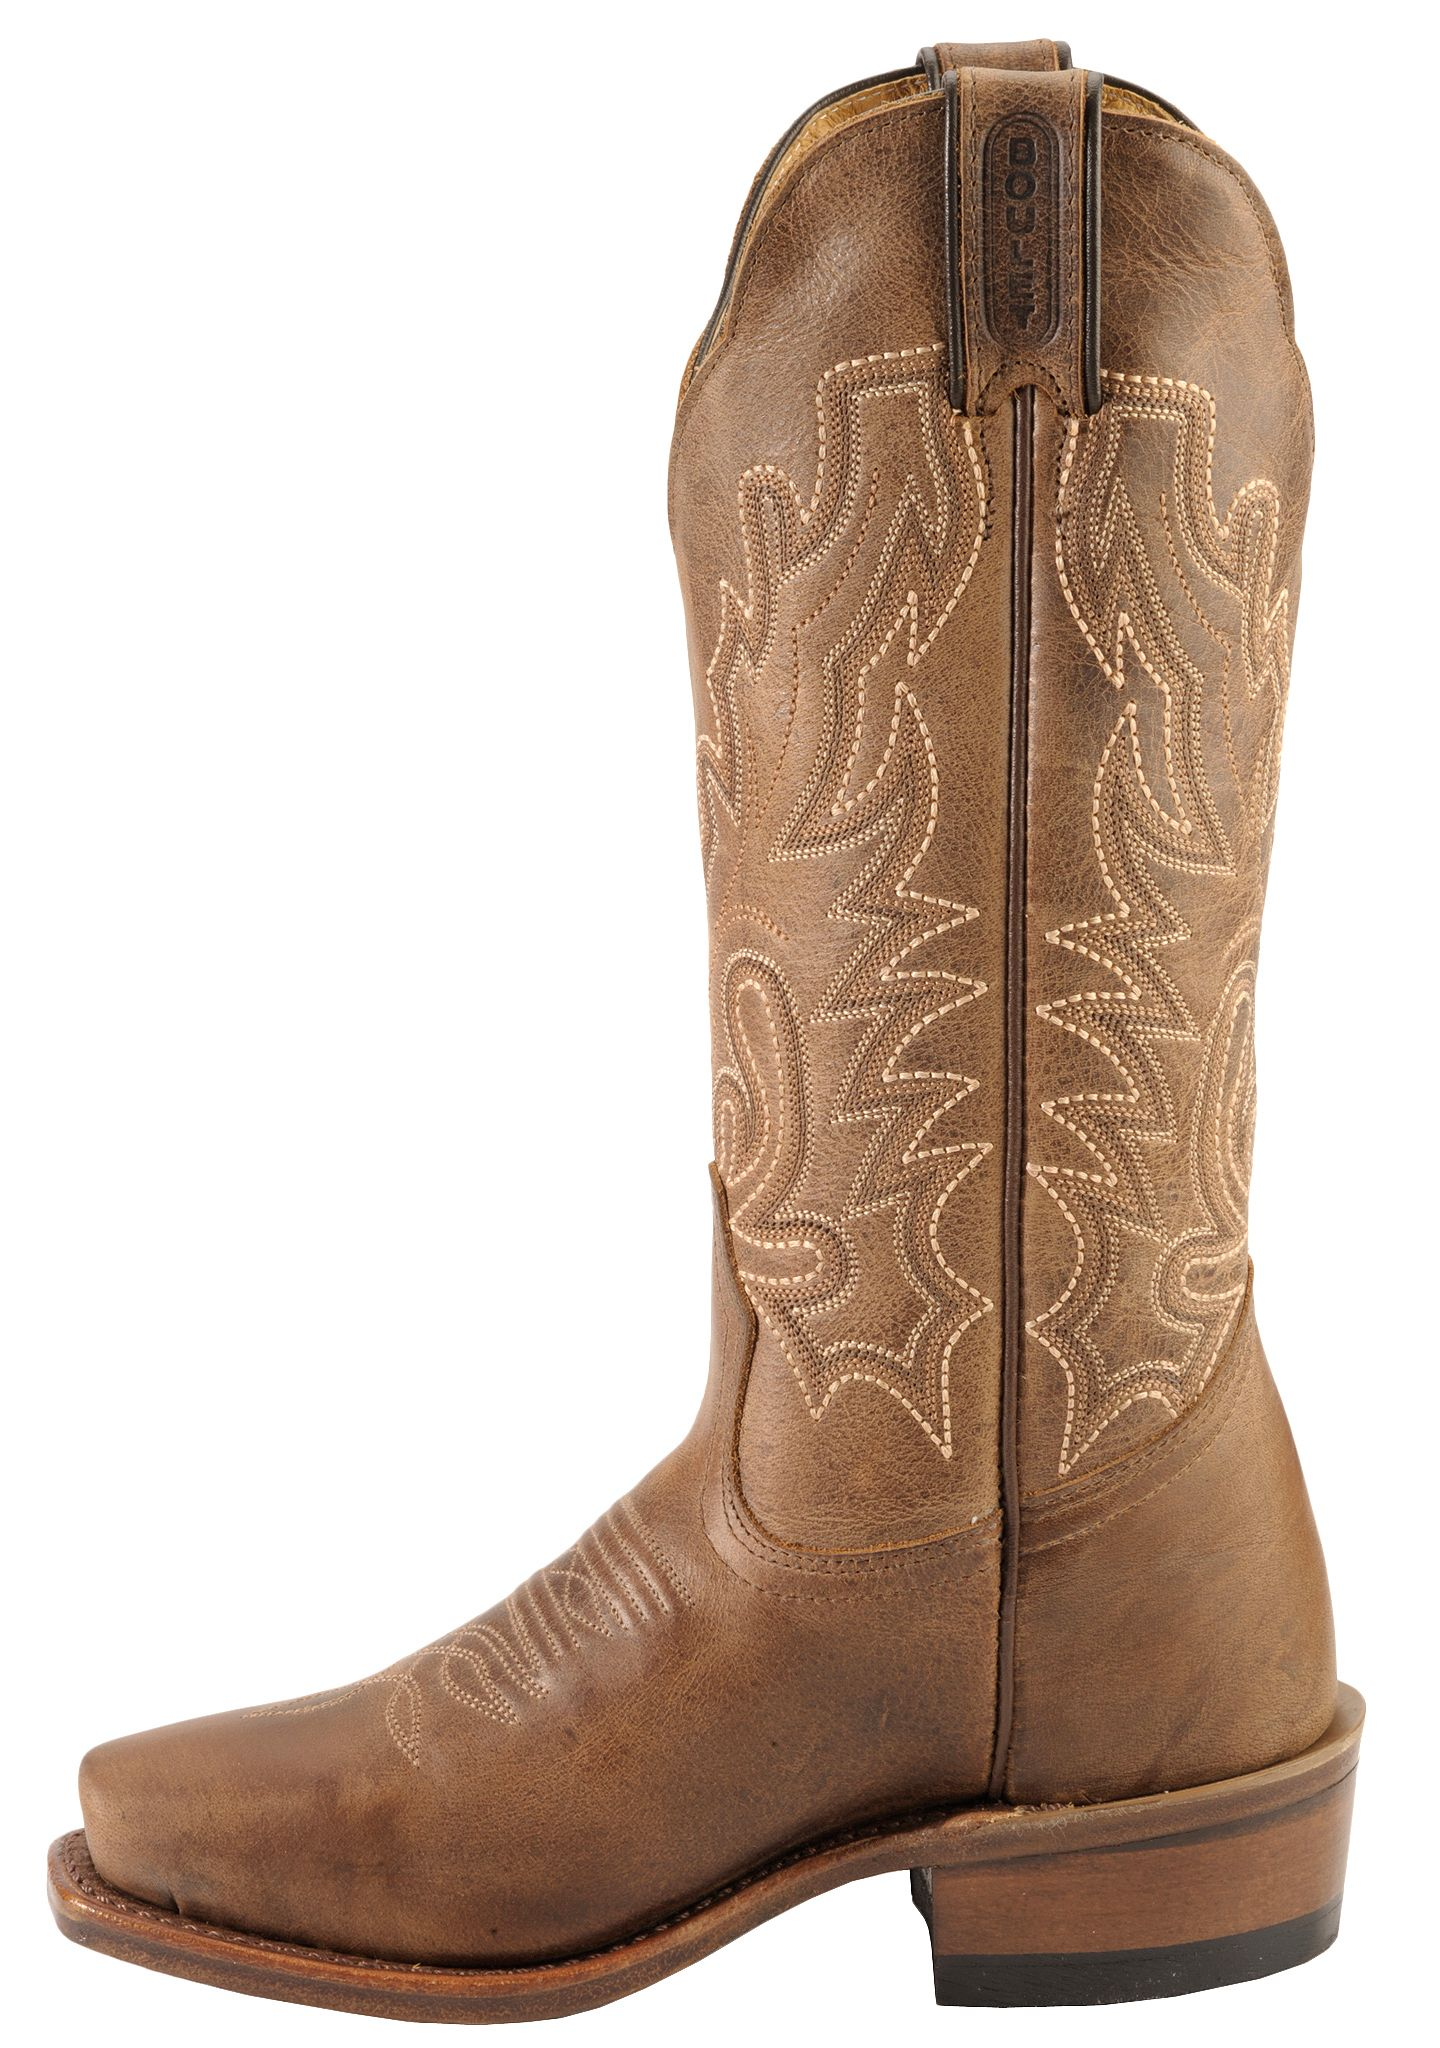 Boulet Lady Rancher Cowgirl Boots - Narrow Square Toe - Country ...